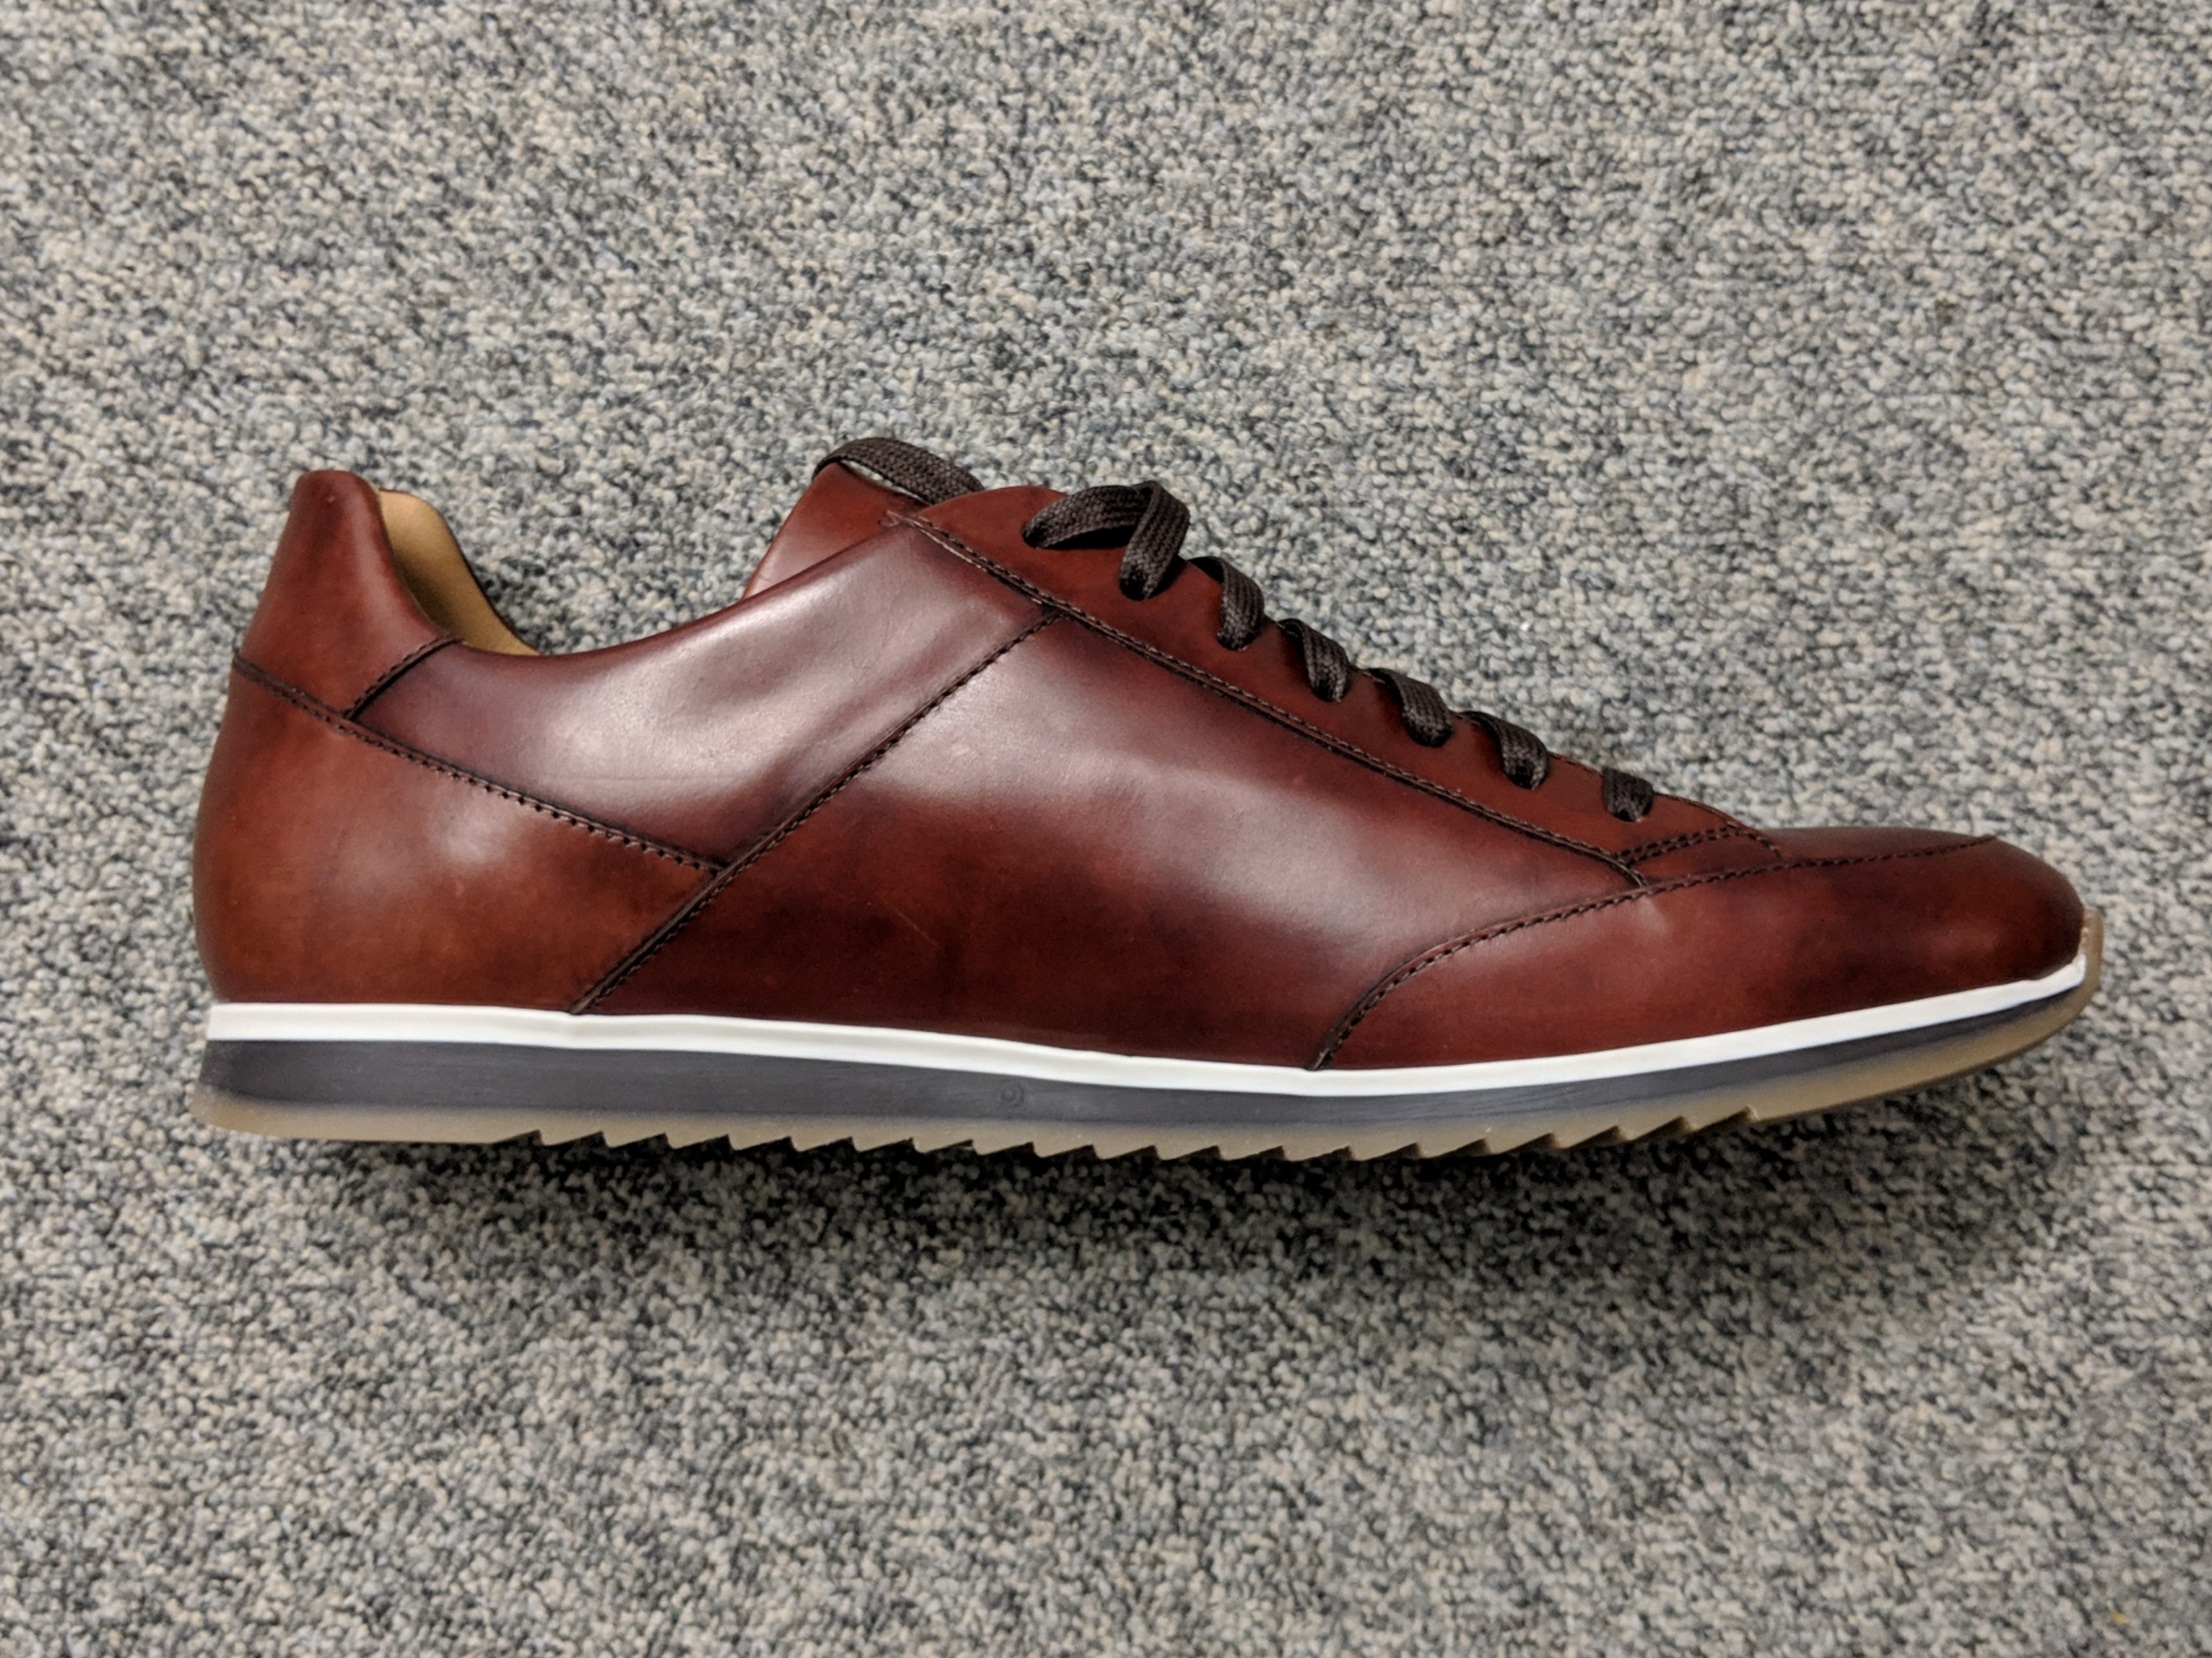 Magnanni Leather Sneakers 43, Men's